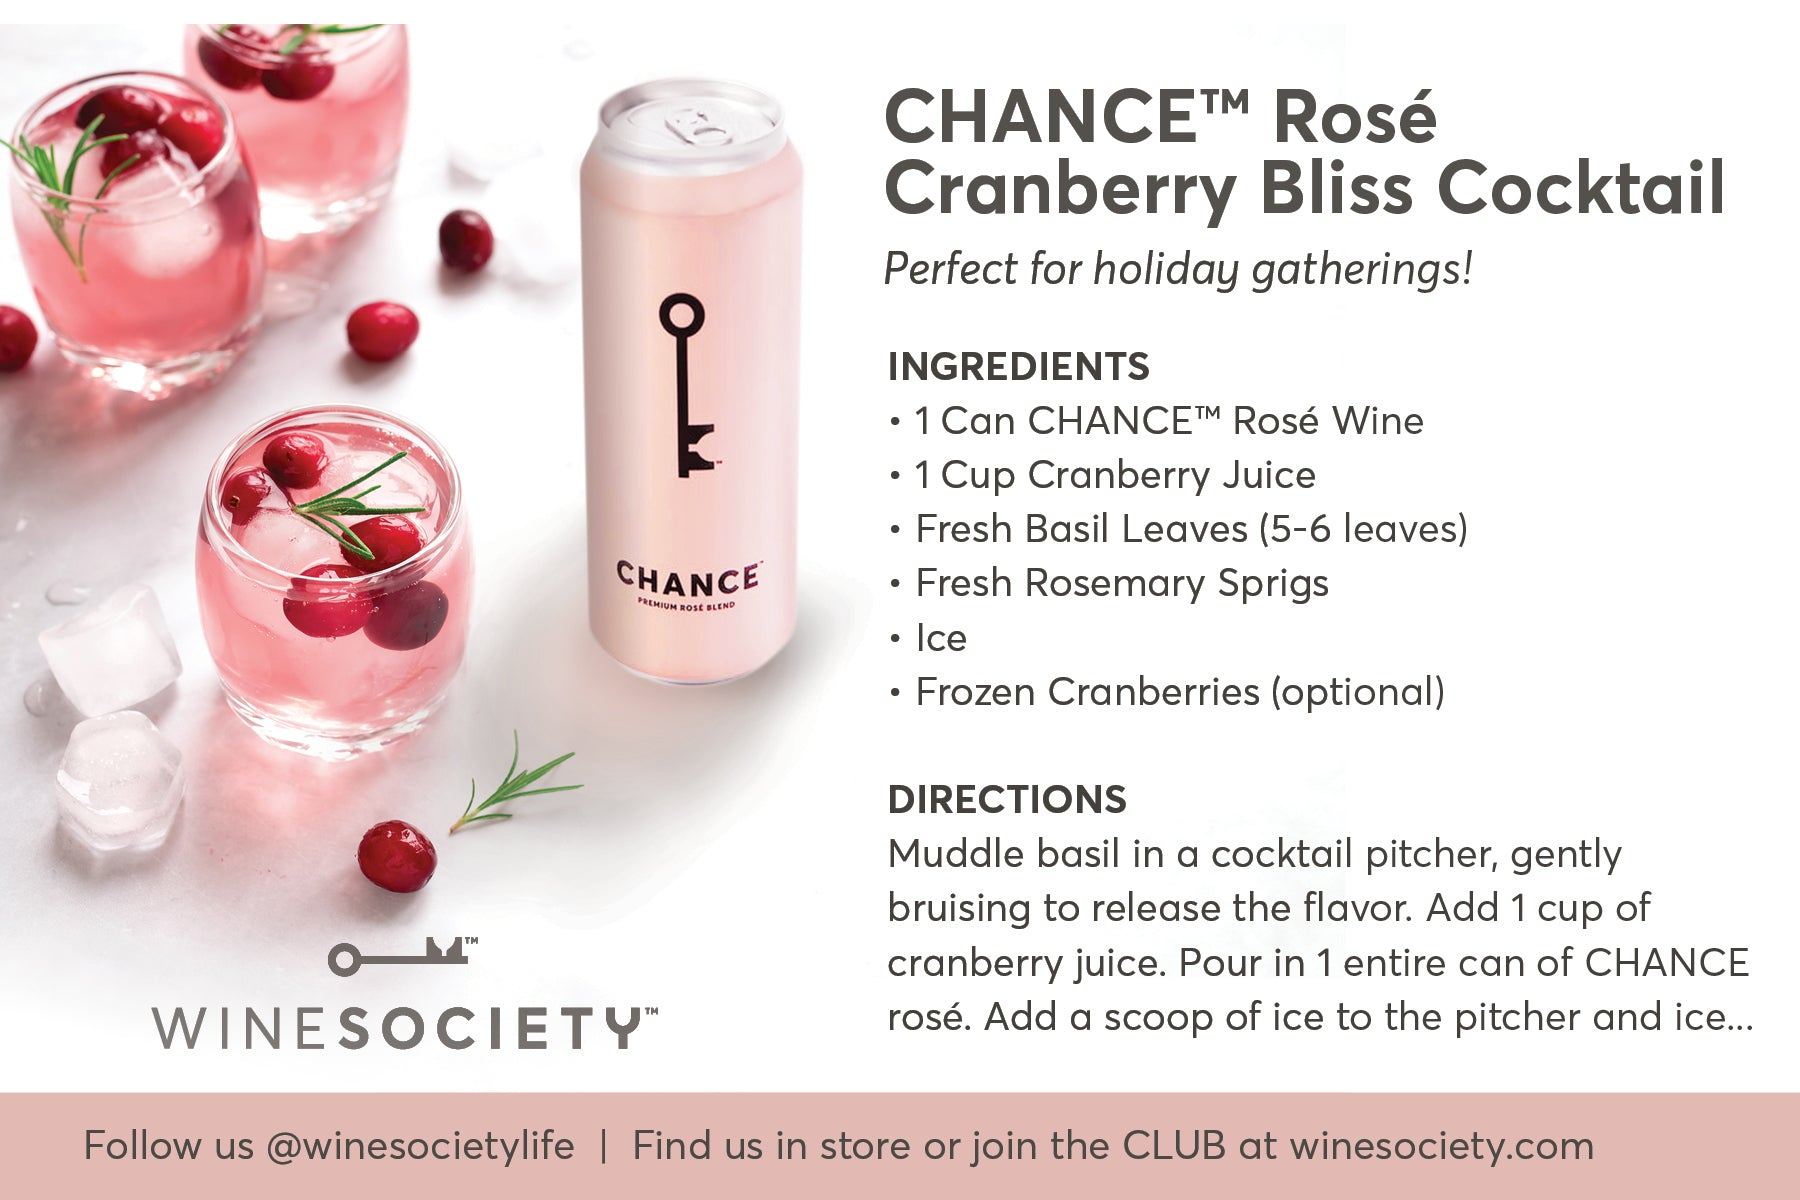 WineSociety 4x6 Recipe Card Cranberry Bliss Cocktail